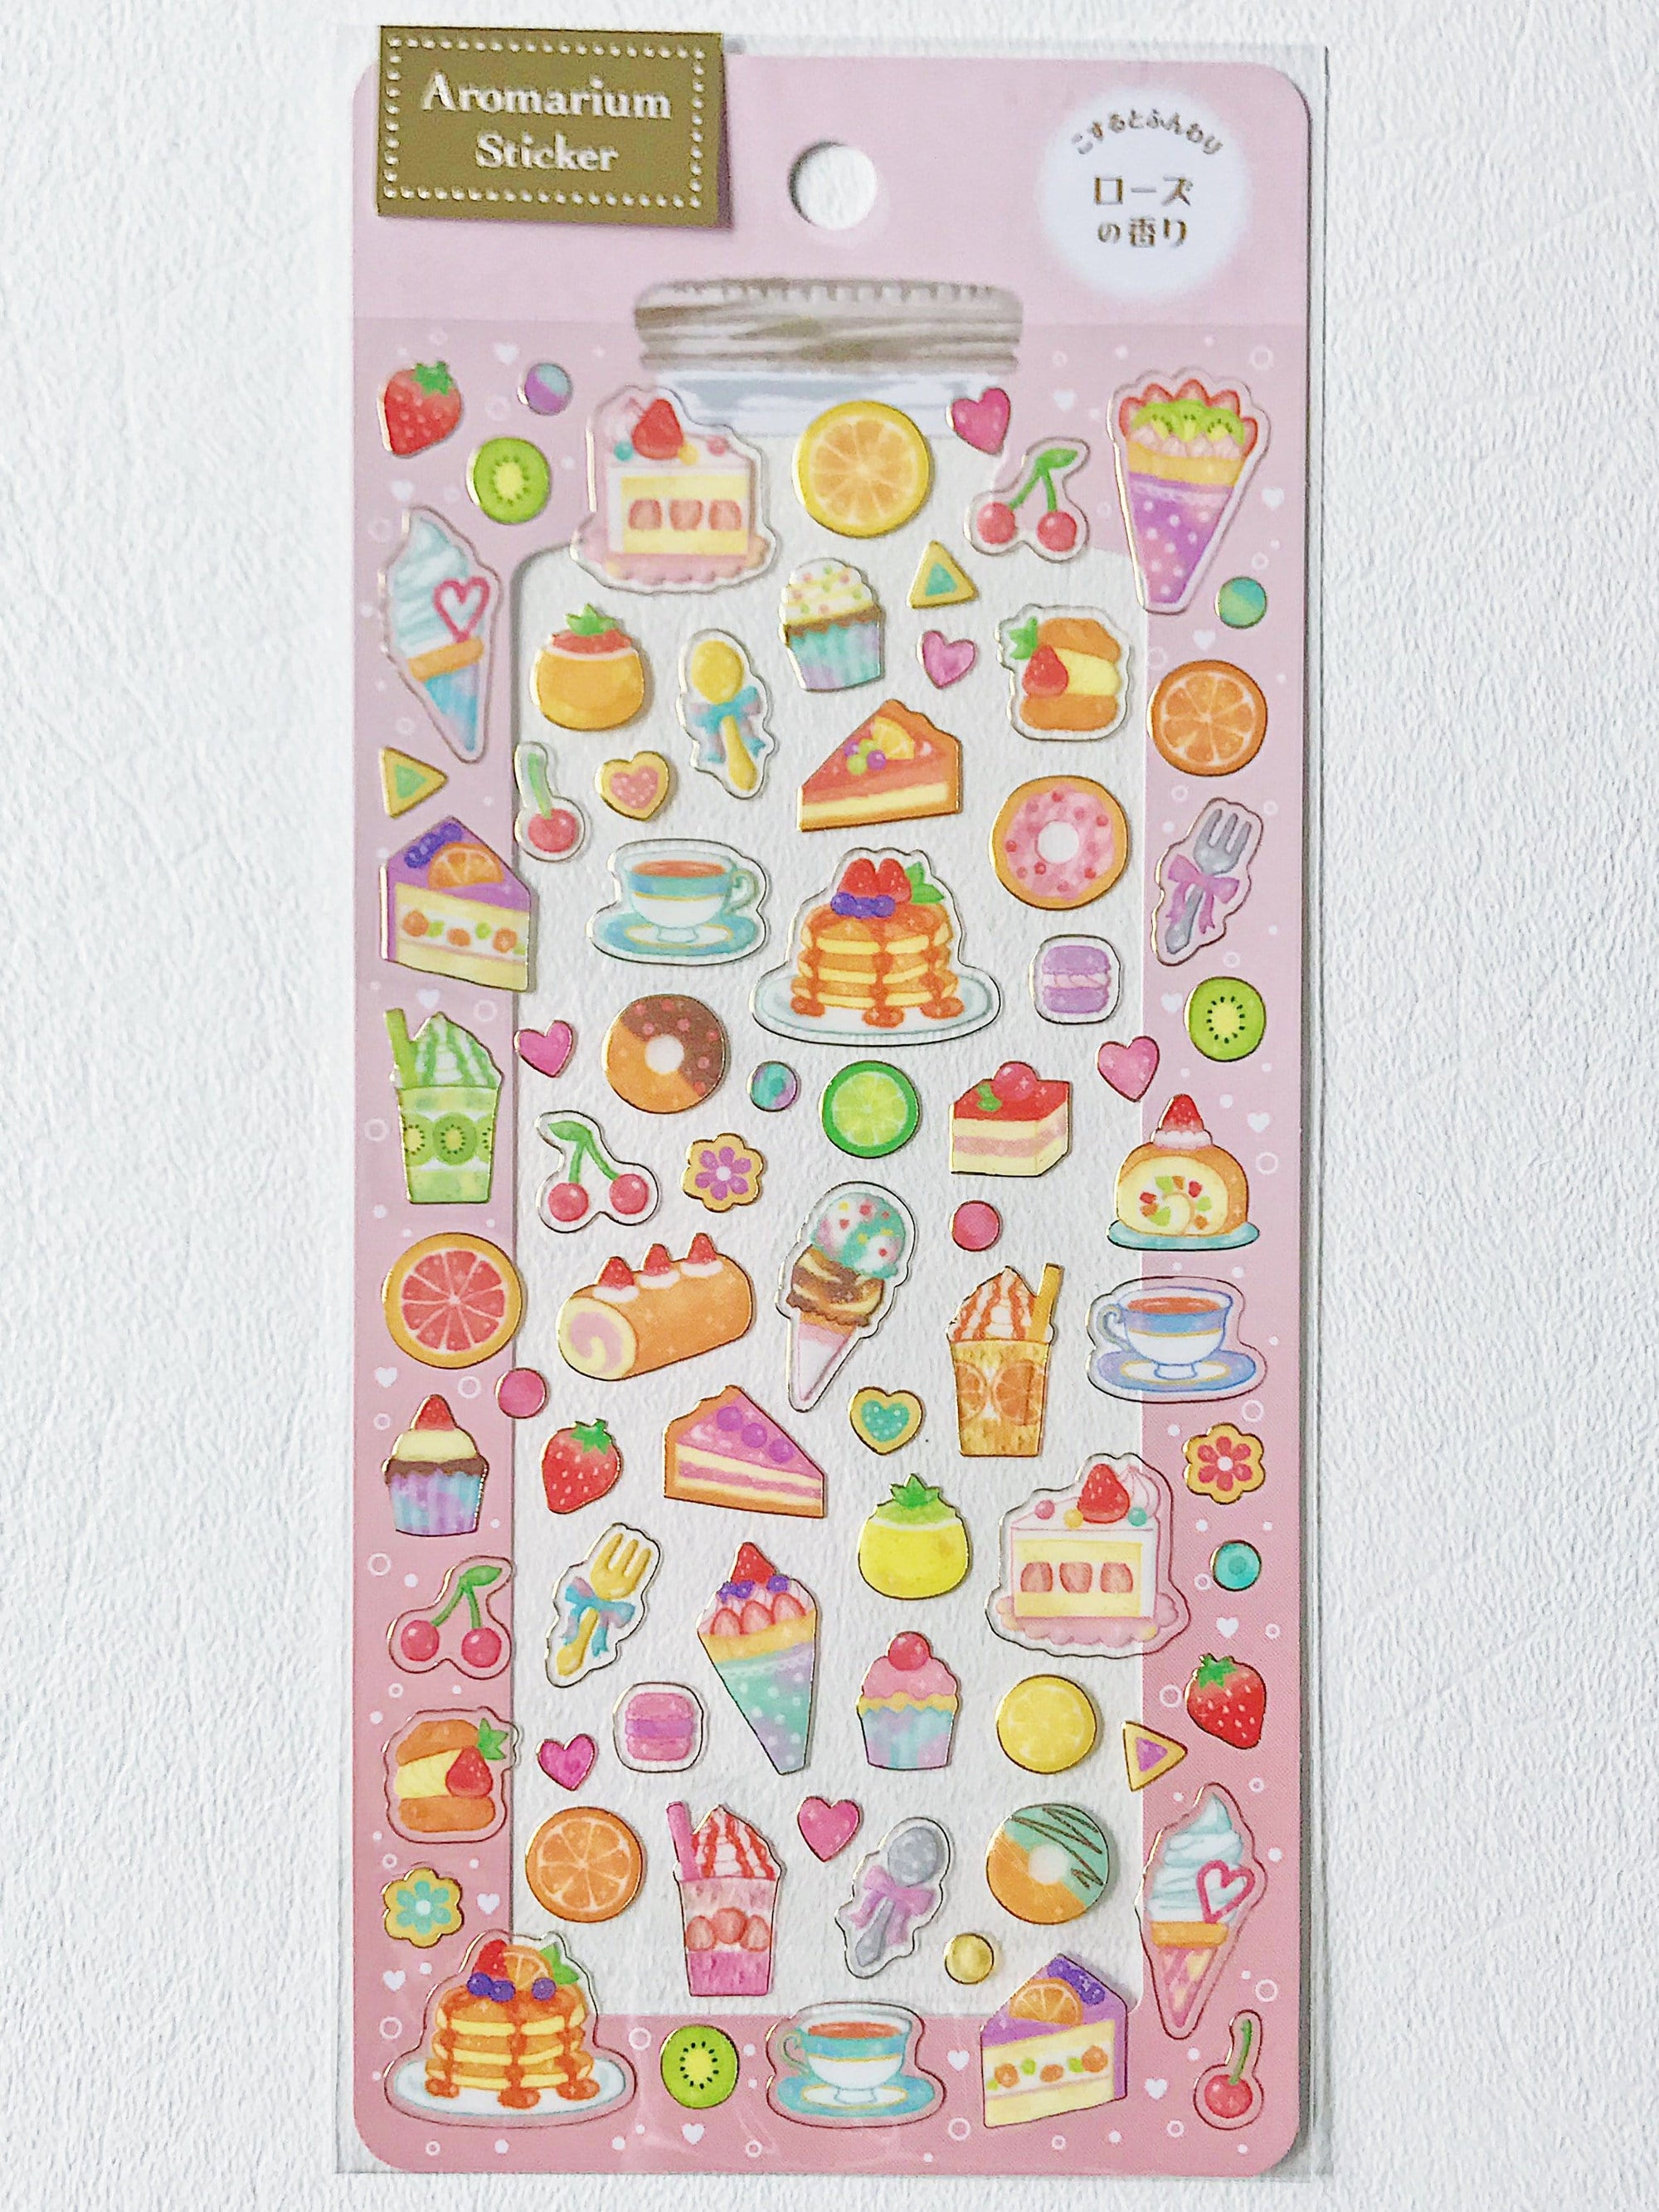 Scented Aromarium Clear Stickers- Sweet Tooth Theme, Rose Scent